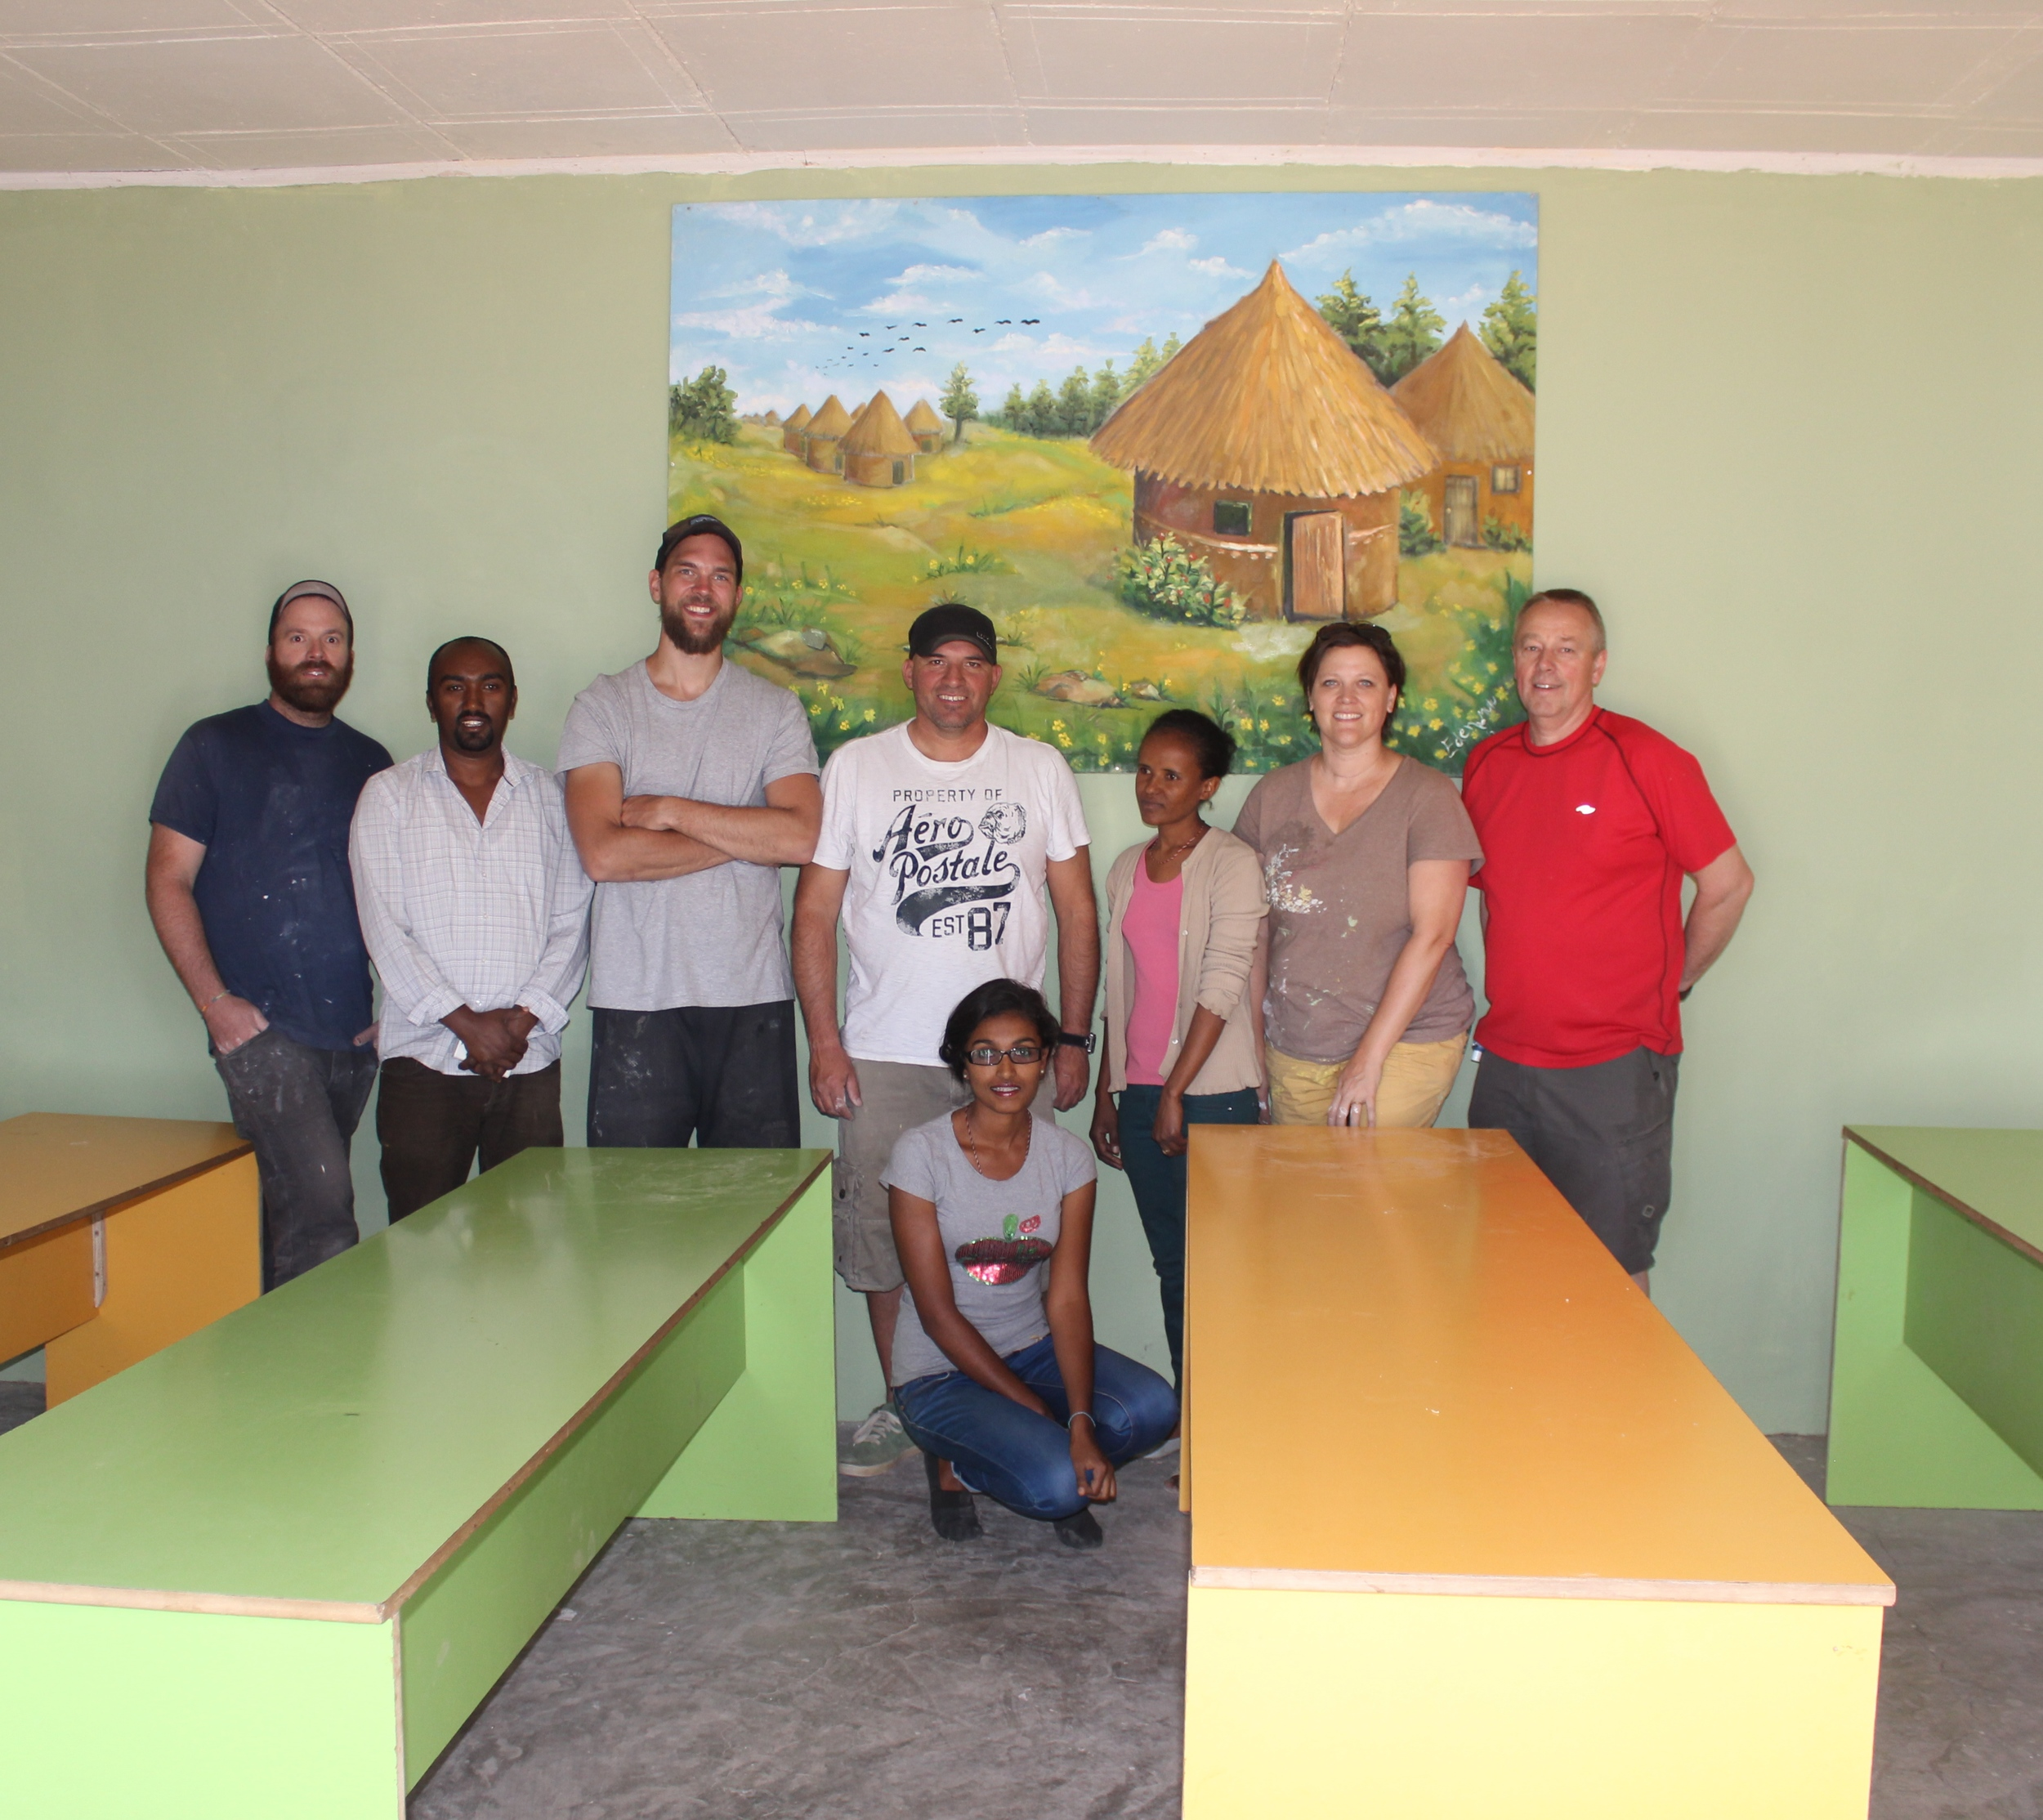 Last year's team refurbished and made repairs to the life centre at Kality, near Addis Ababa.